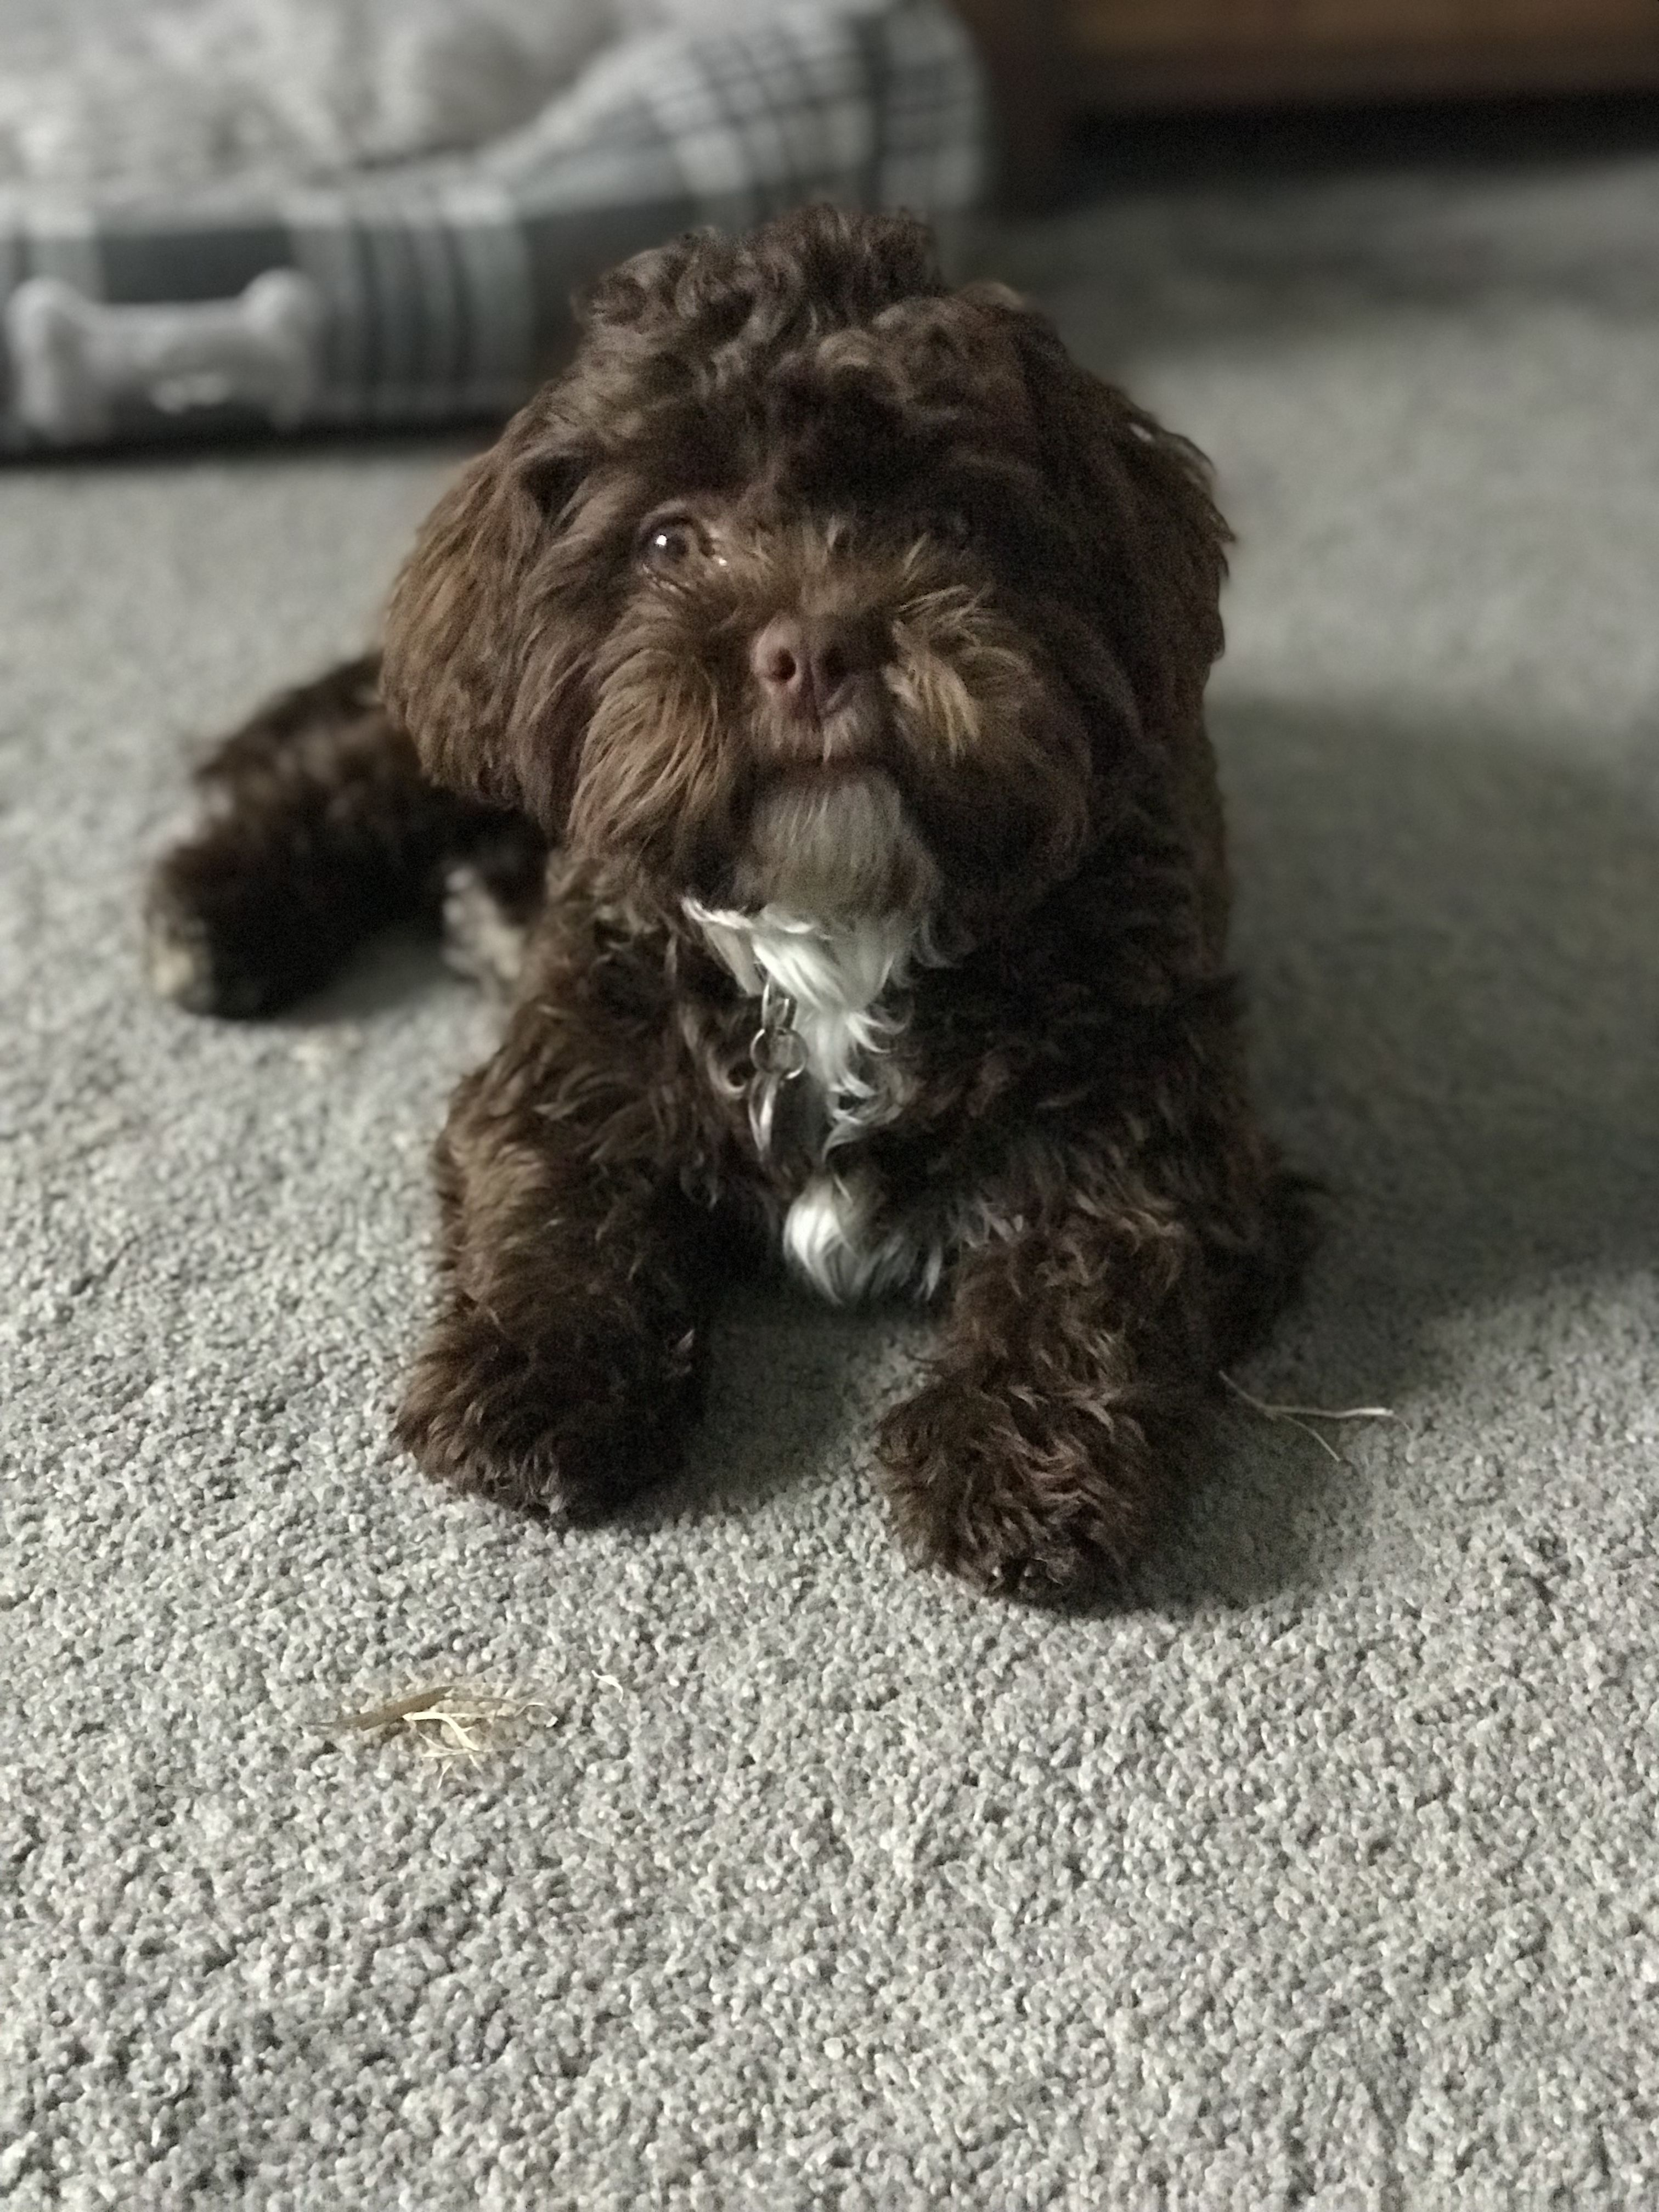 Beyonce The Chocolate Shihpoo Puppy Cute Little Dogs Shih Poo